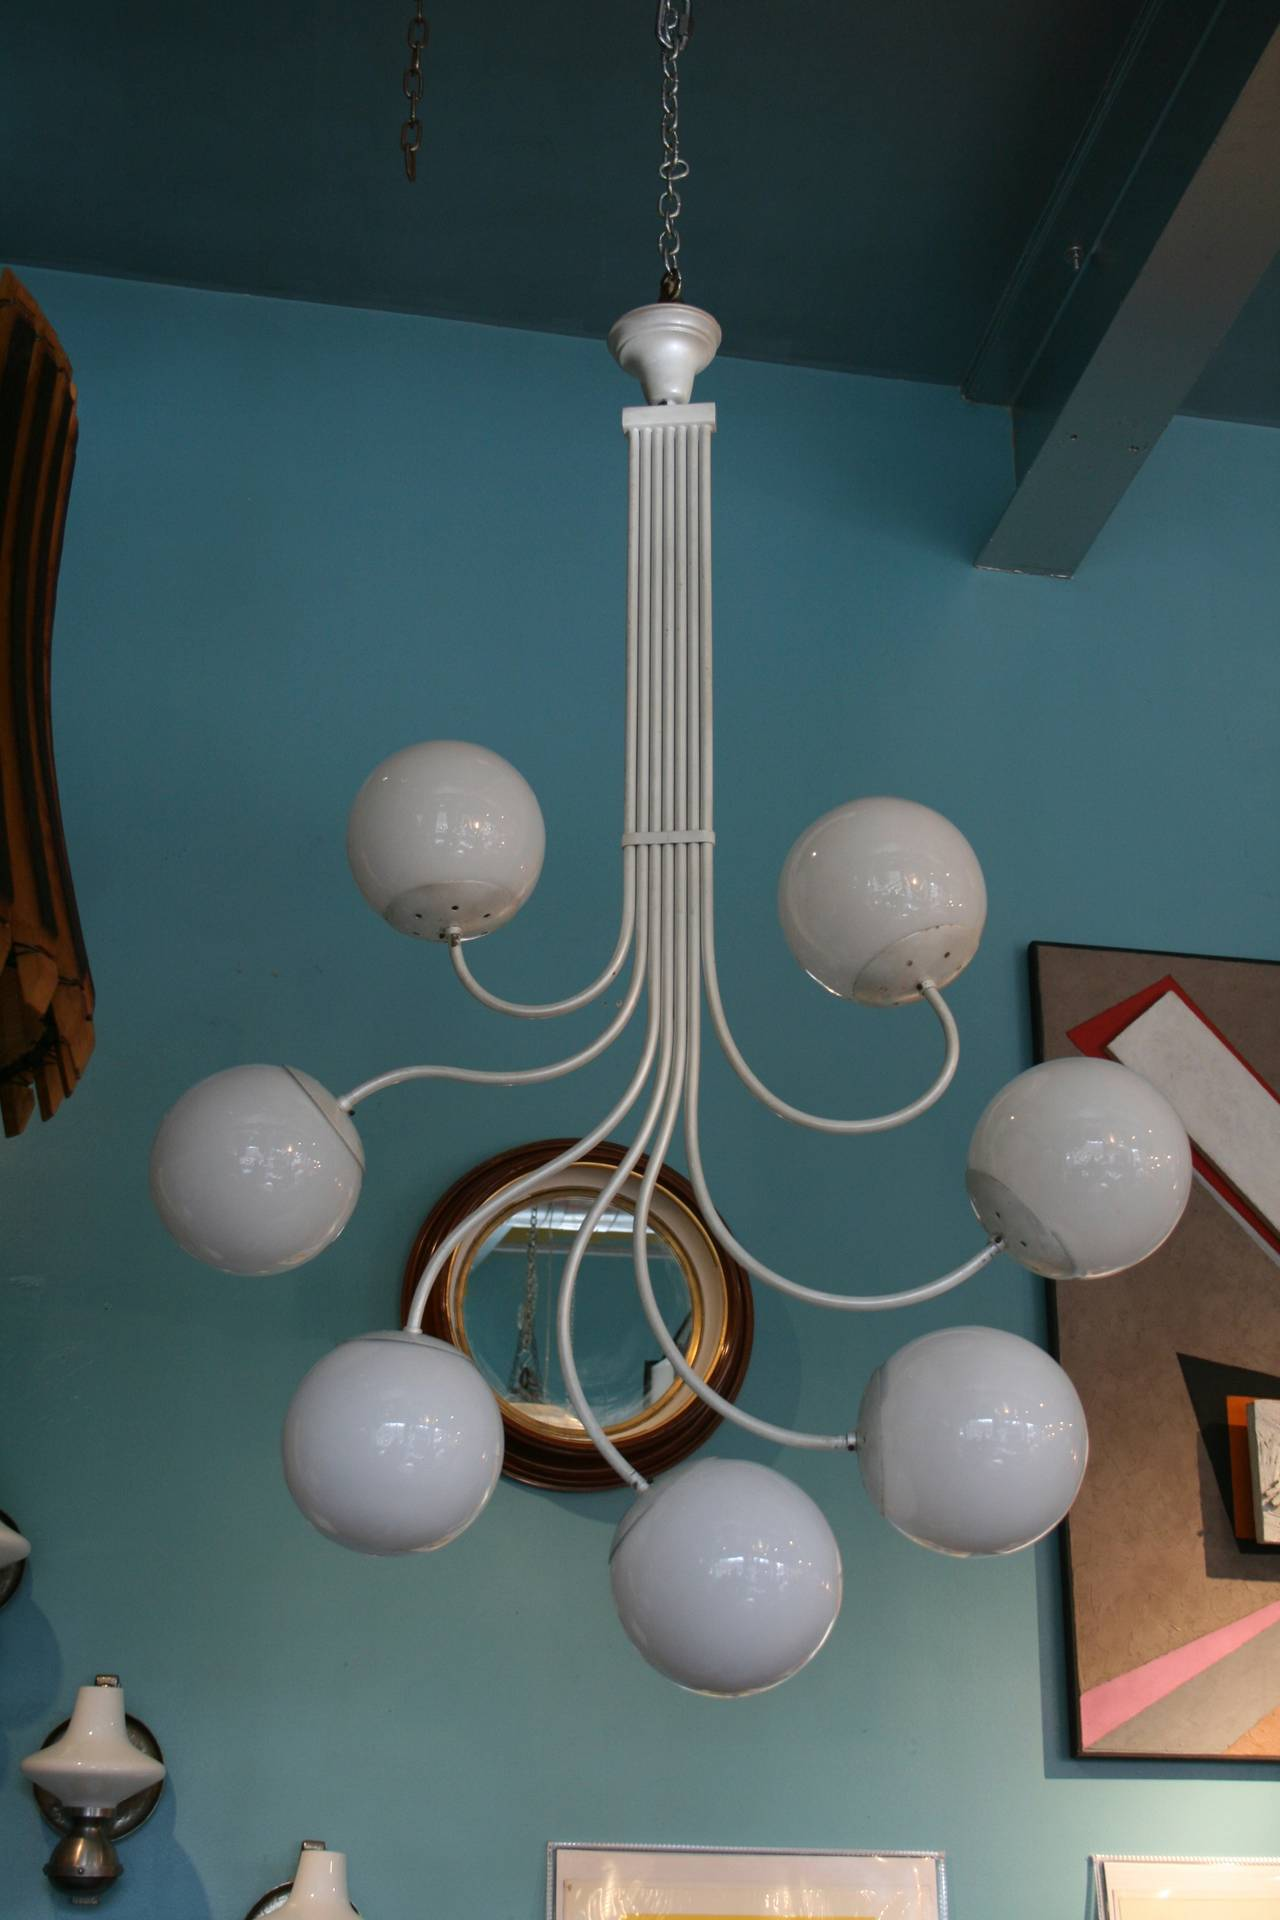 Mid-20th Century Italian Glass Sphere Chandelier by Gino Sarfatti For Sale